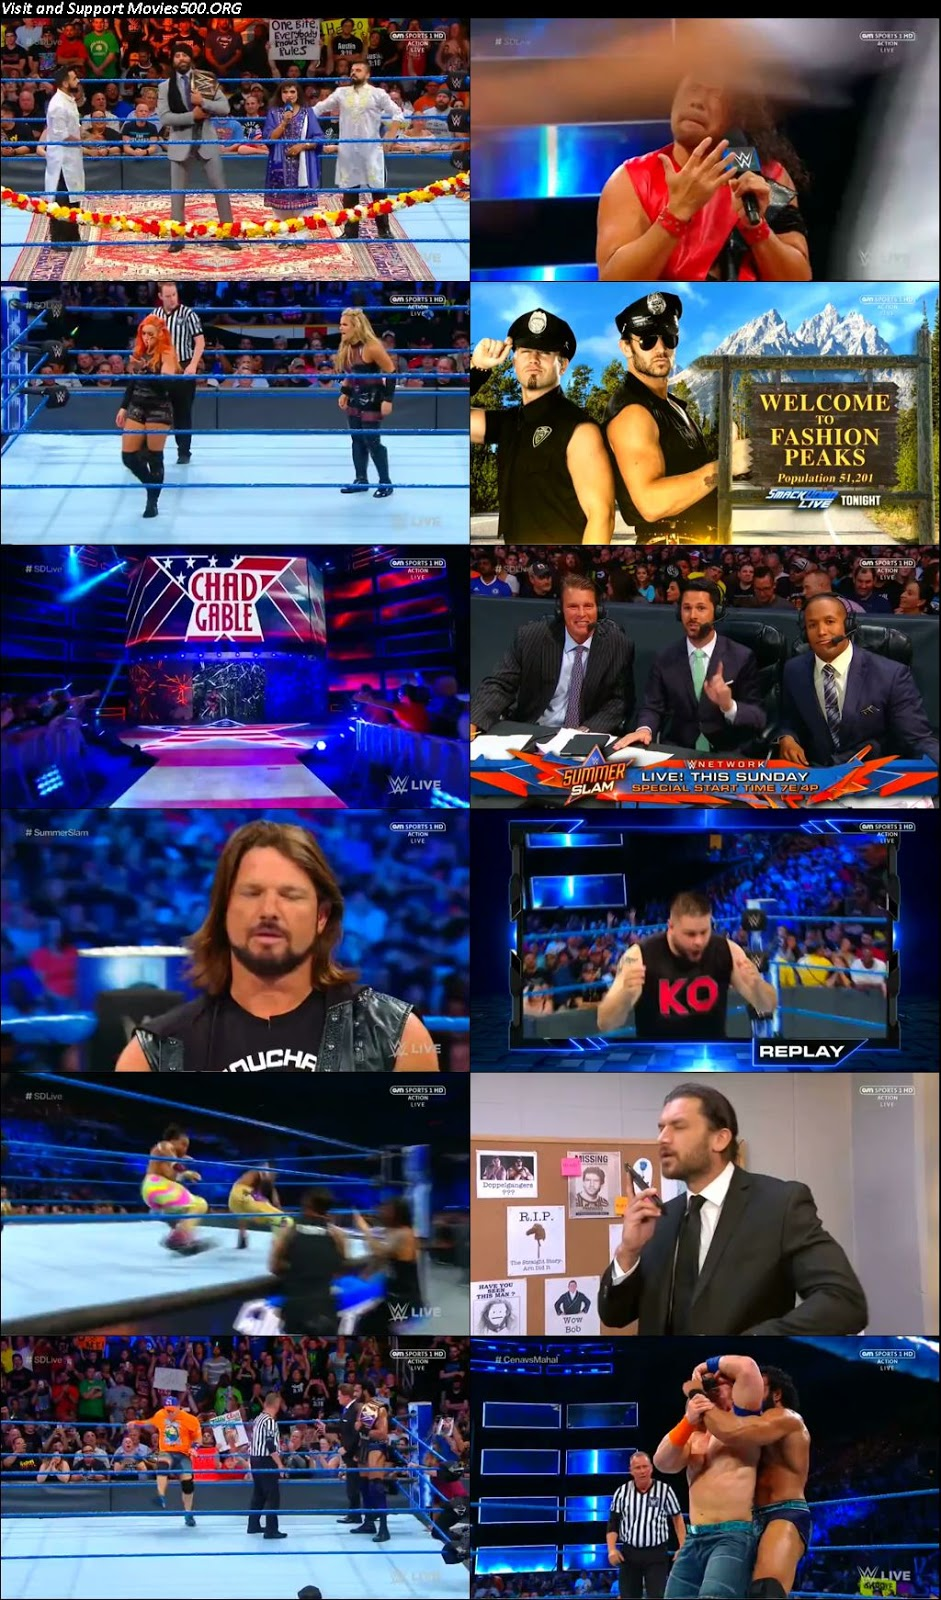 WWE Smackdown Live 15 Aug 2017 HDTV Full Show Download 720p at xcharge.net